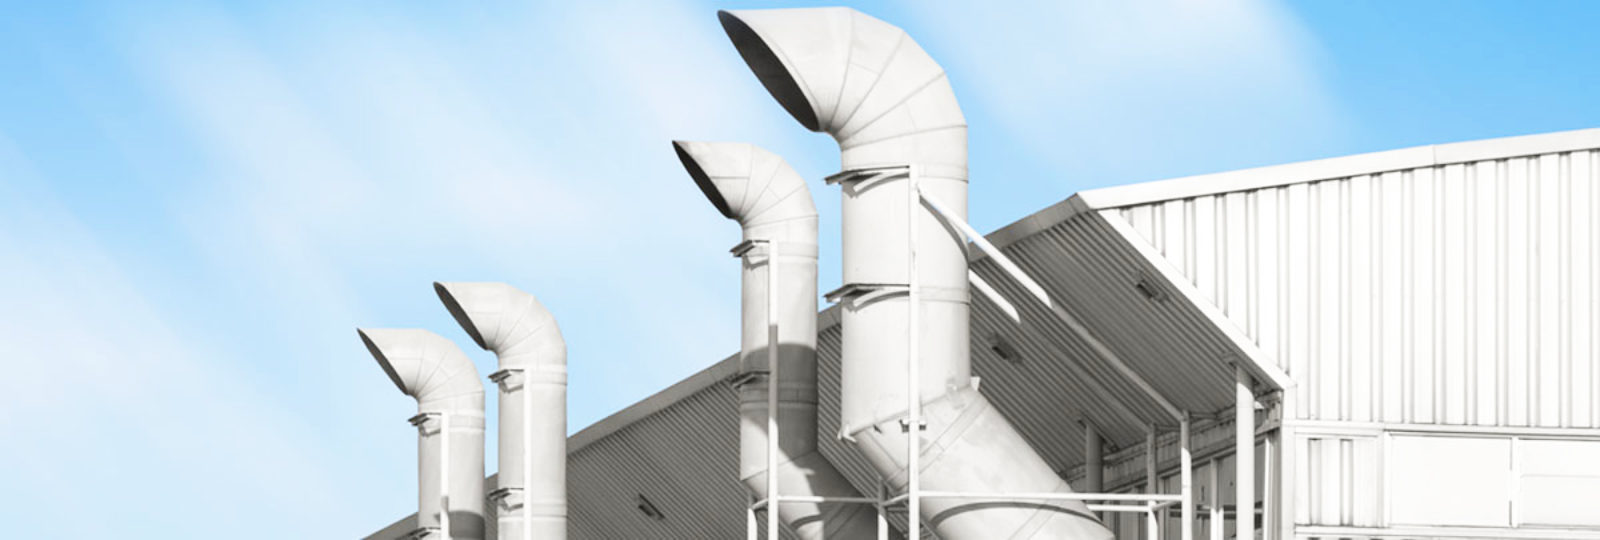 An image showing four air pipes outside on a roof.